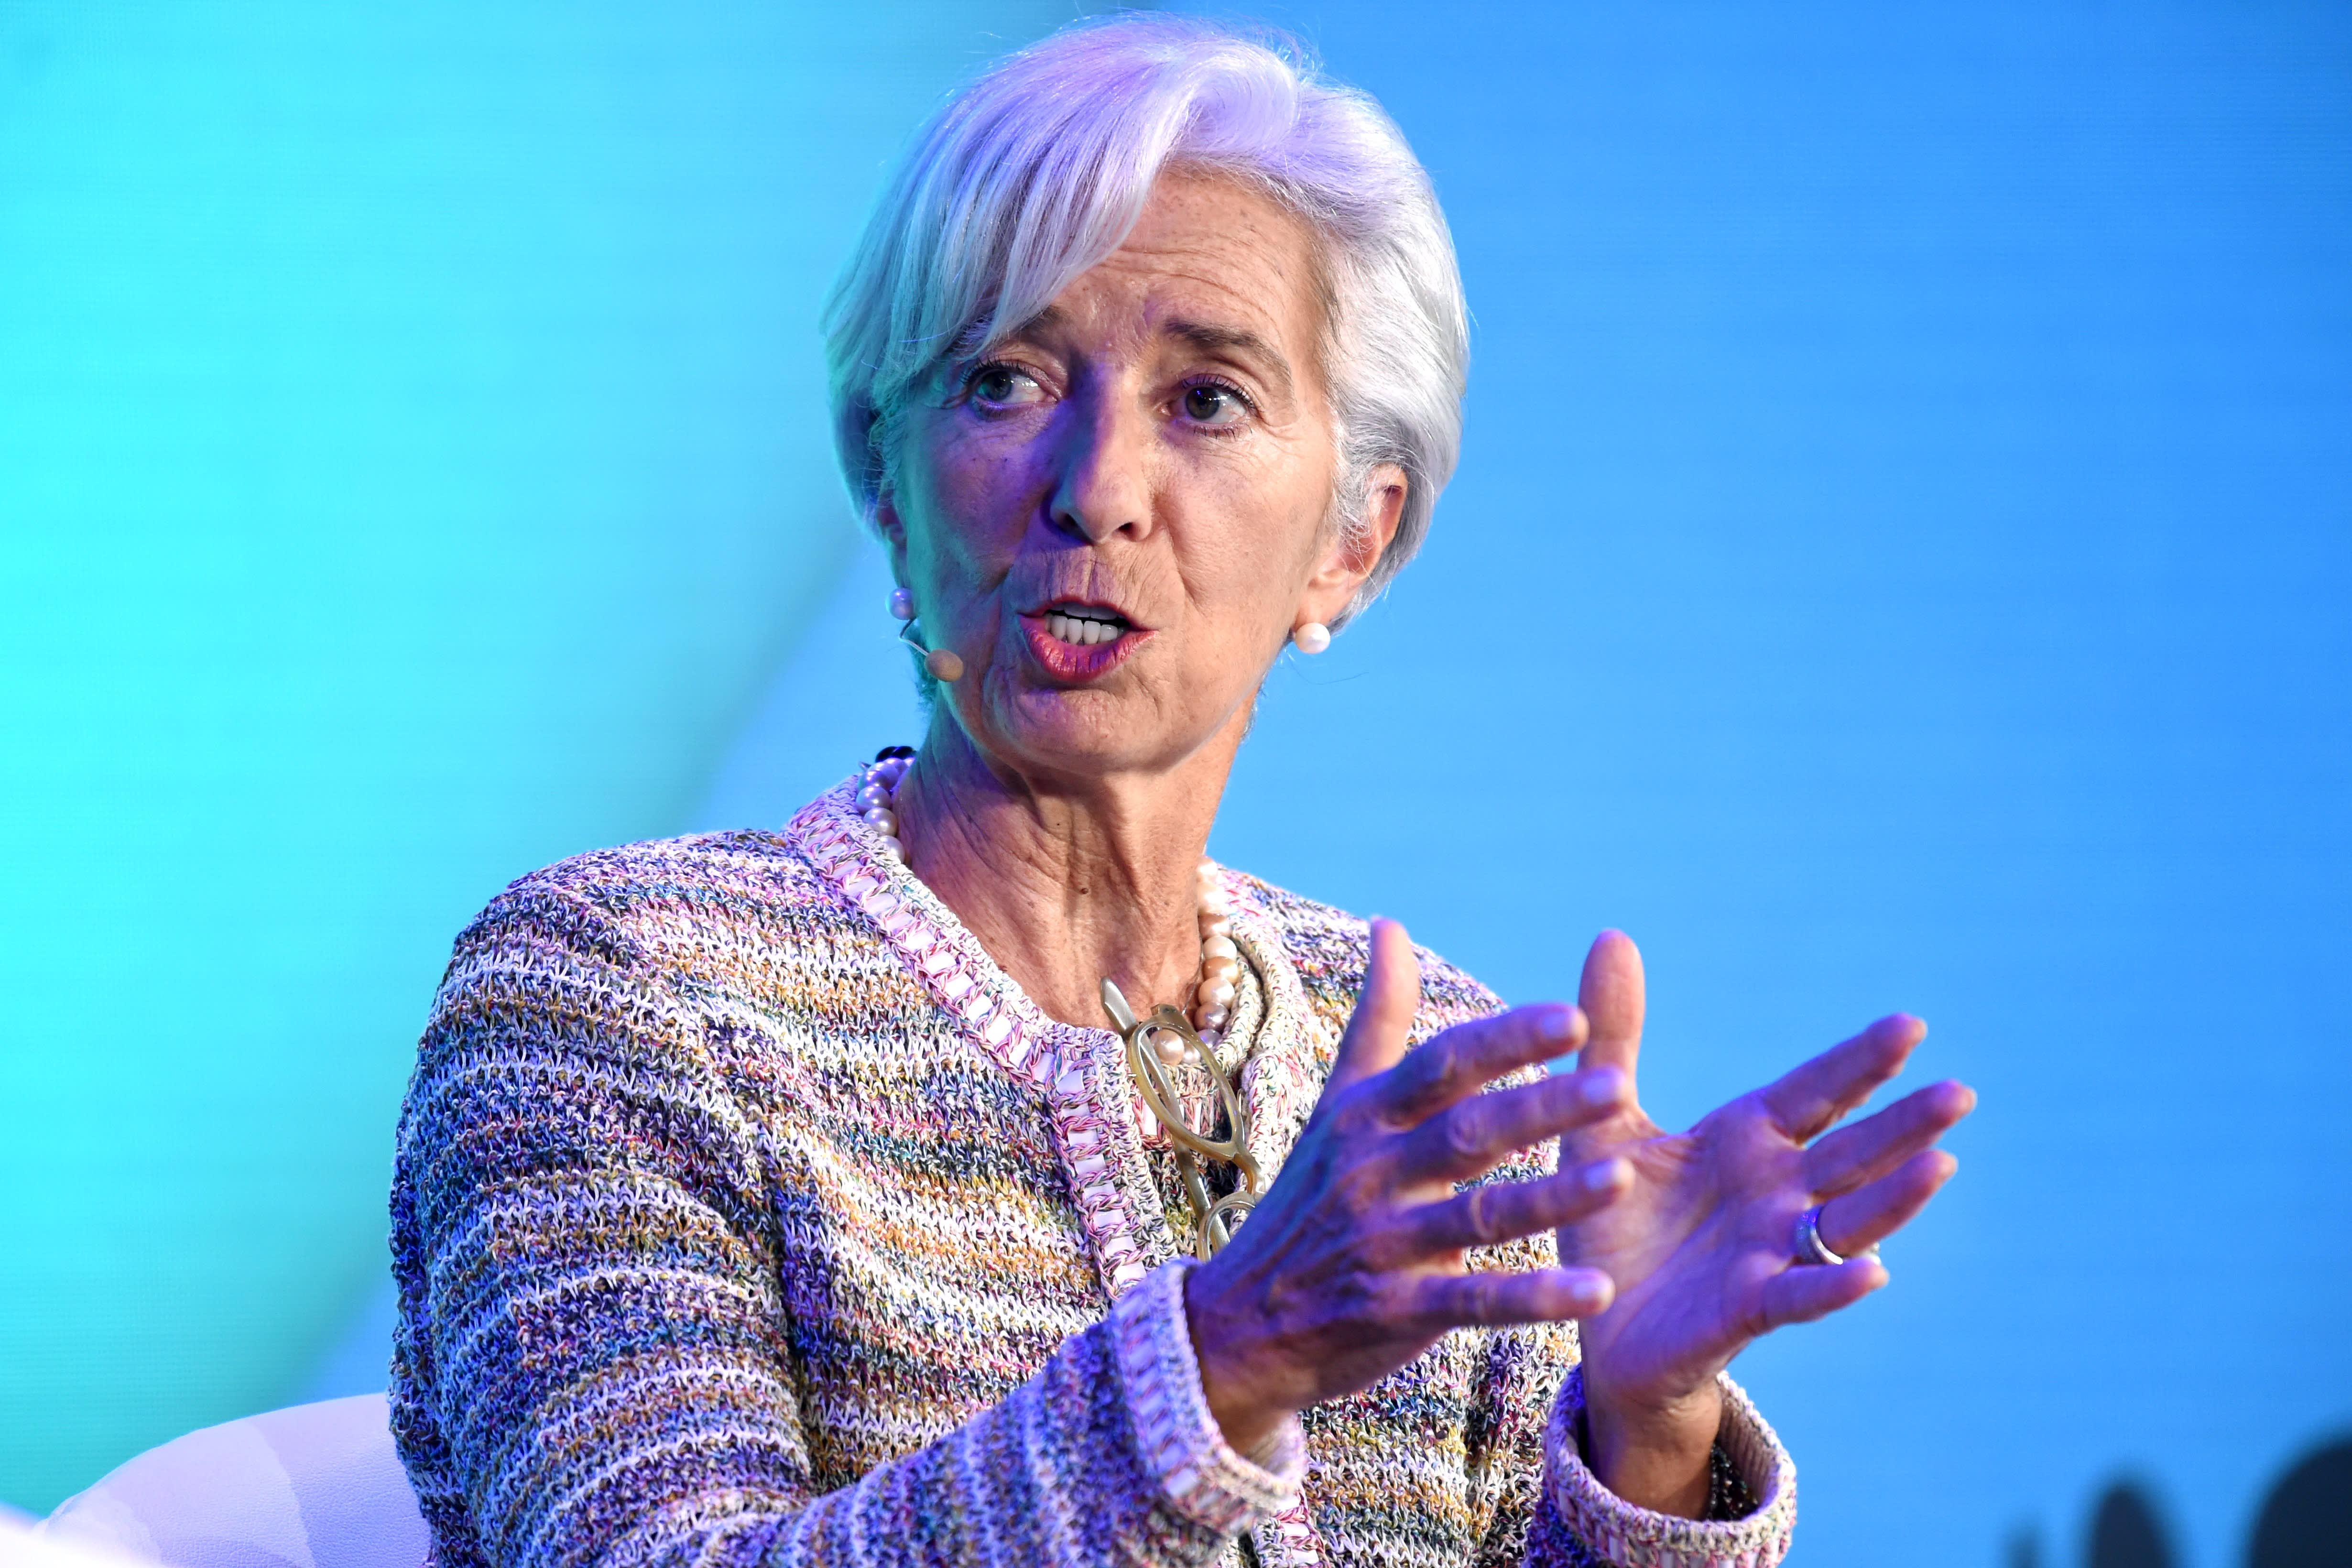 Lagarde will have 'very little' left to tackle any euro zone weakness, bank CEO says